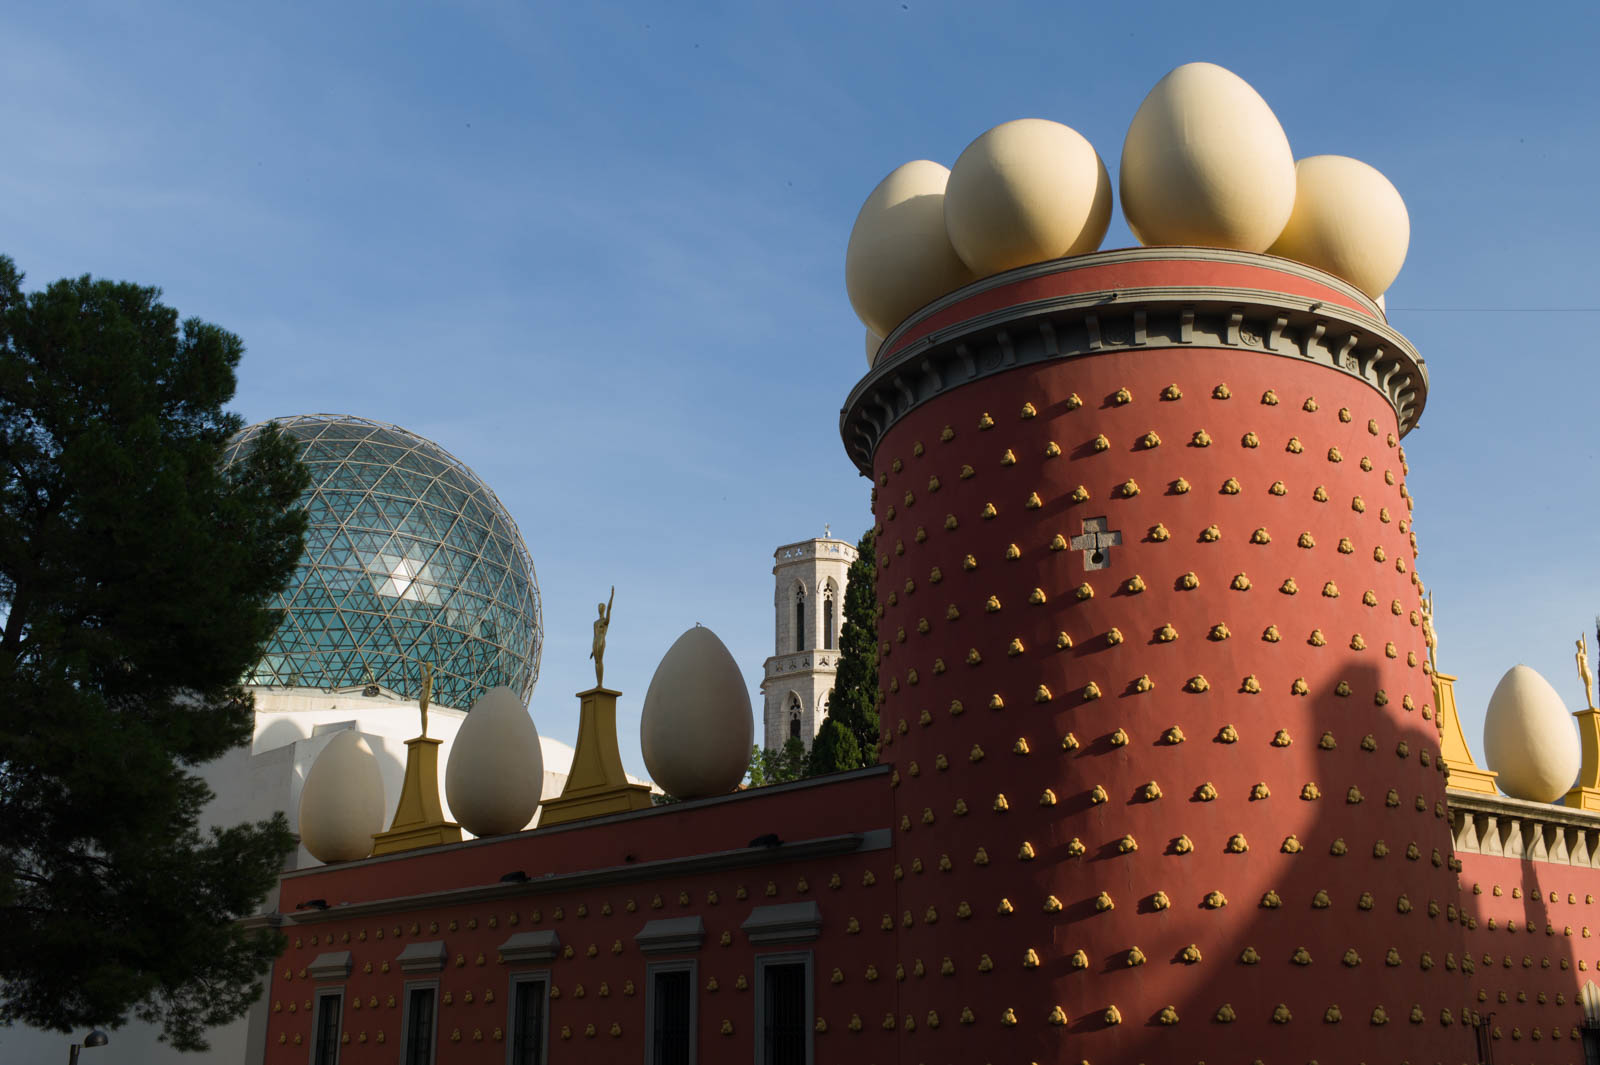 Dalí Theater-Museum in Figueres